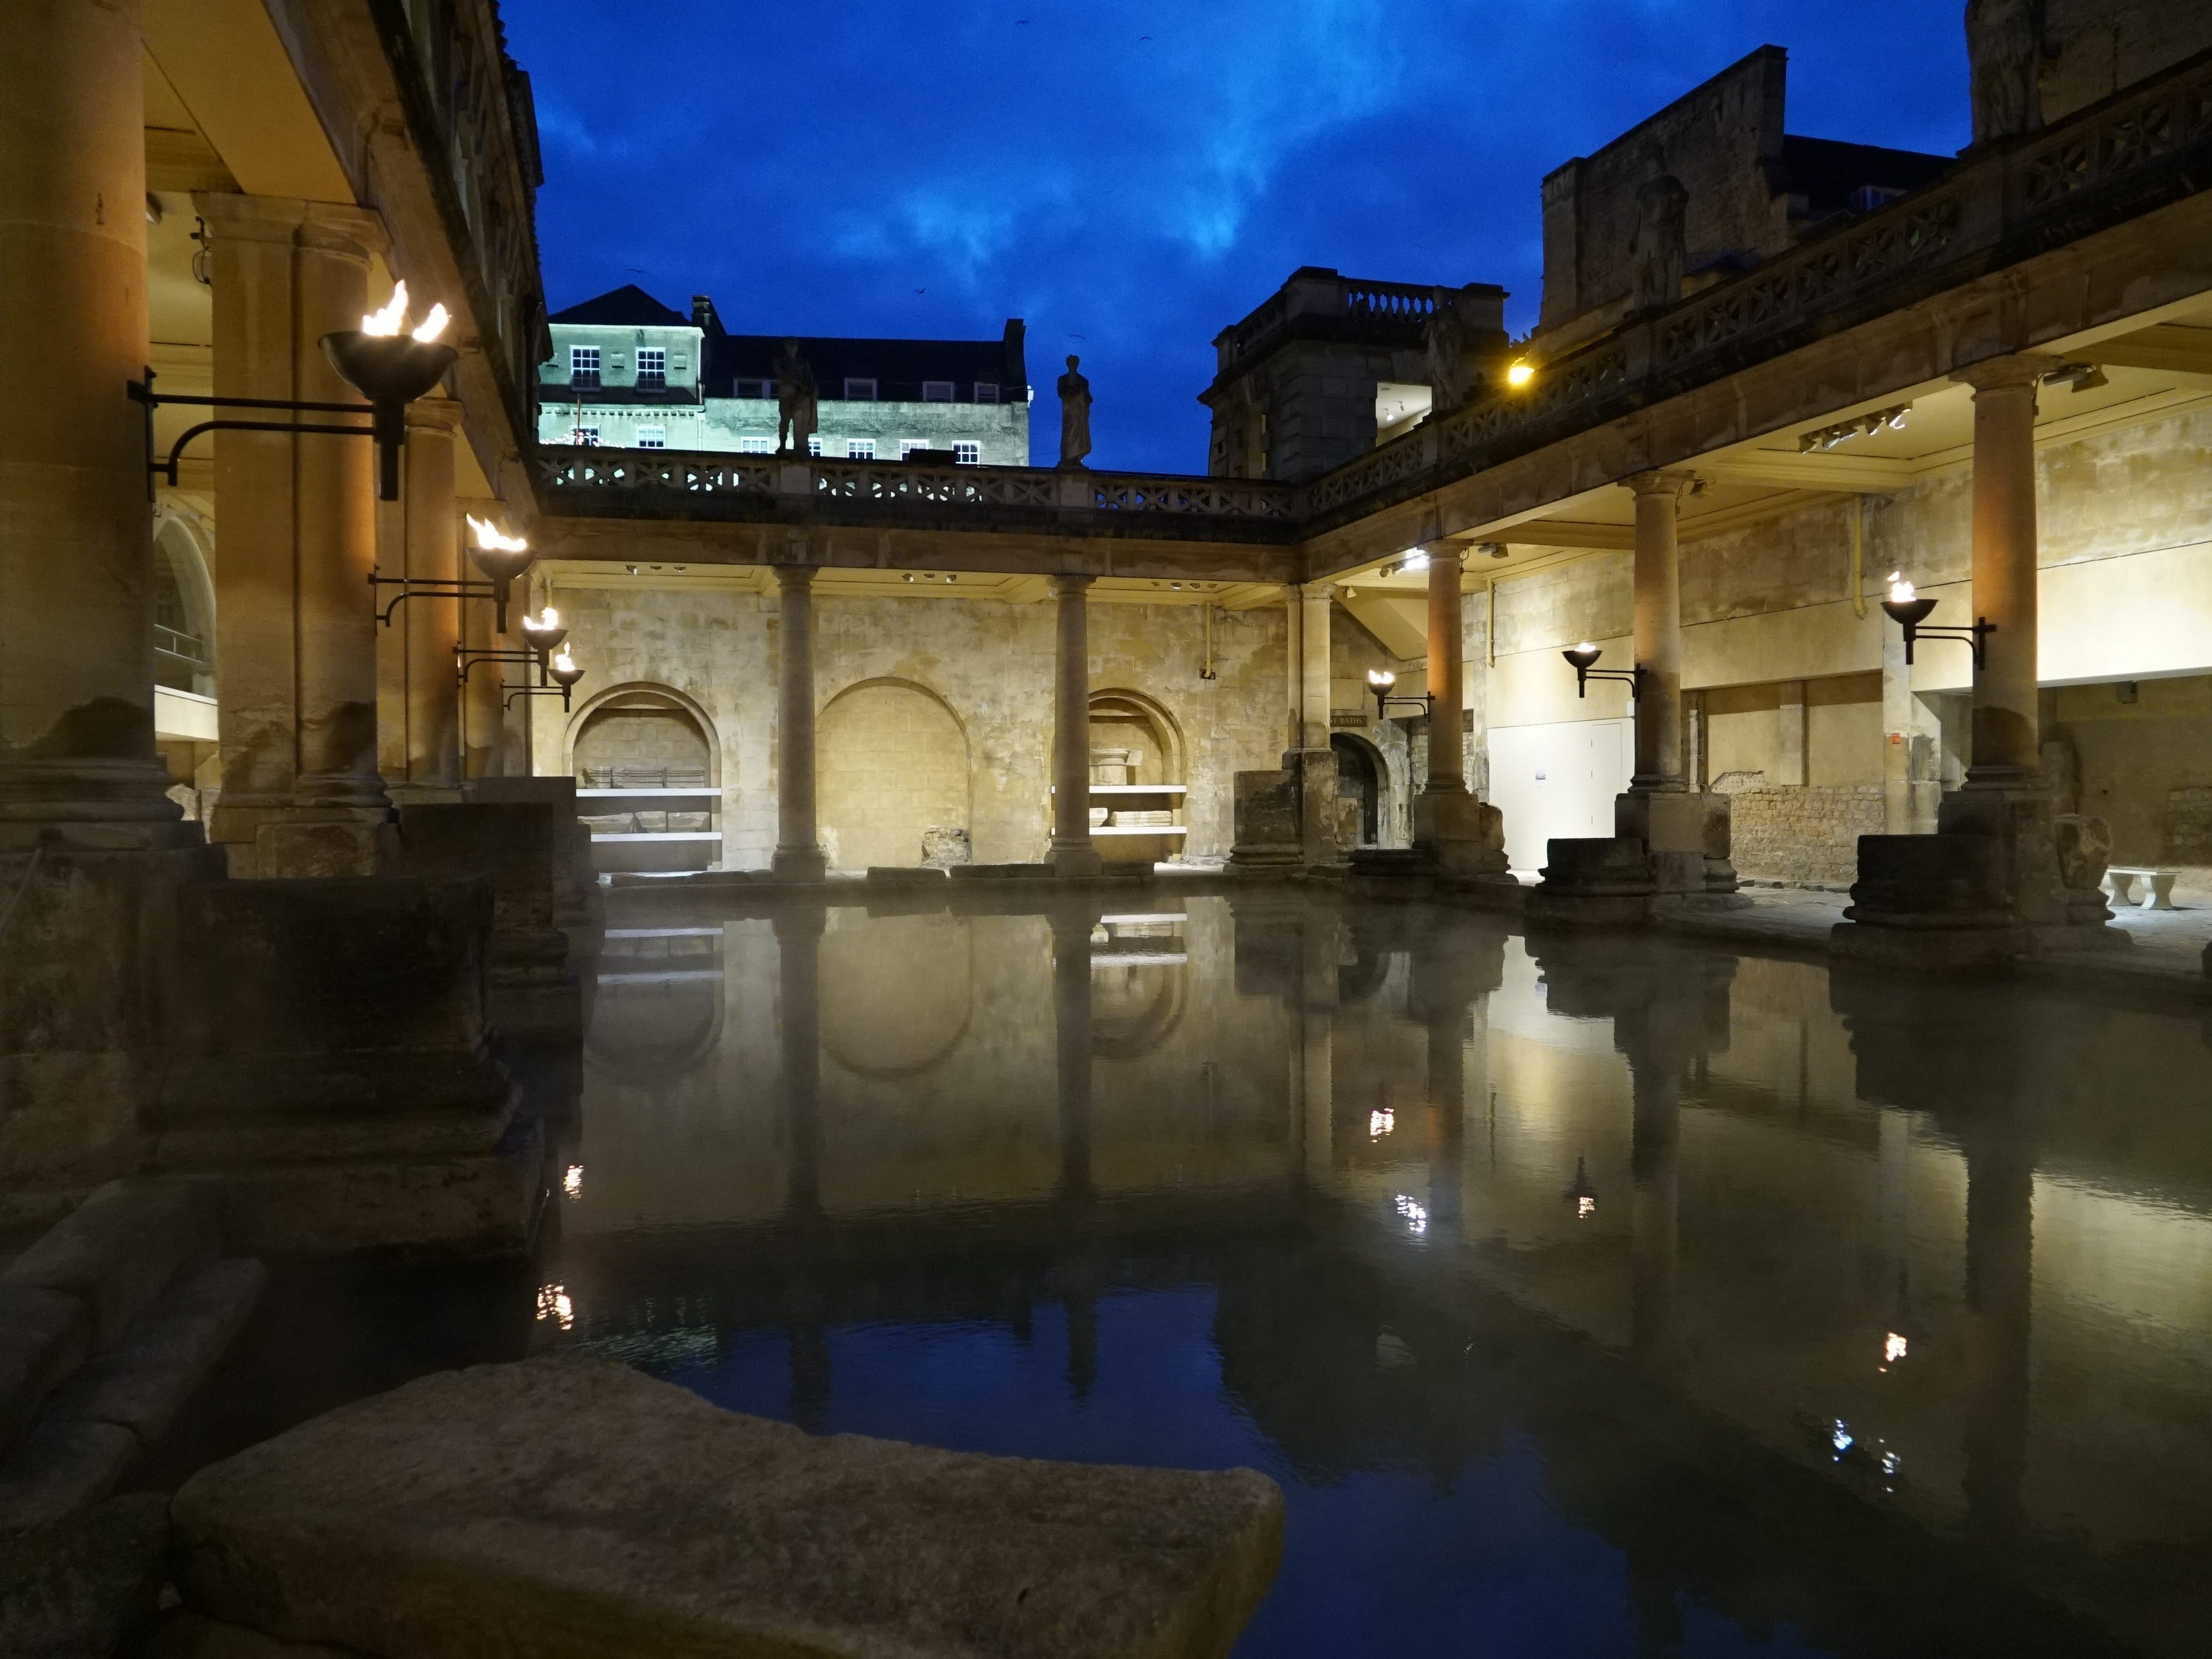 The lower portions of the Roman Baths are ancient, while the frilly touches above are Victorian.